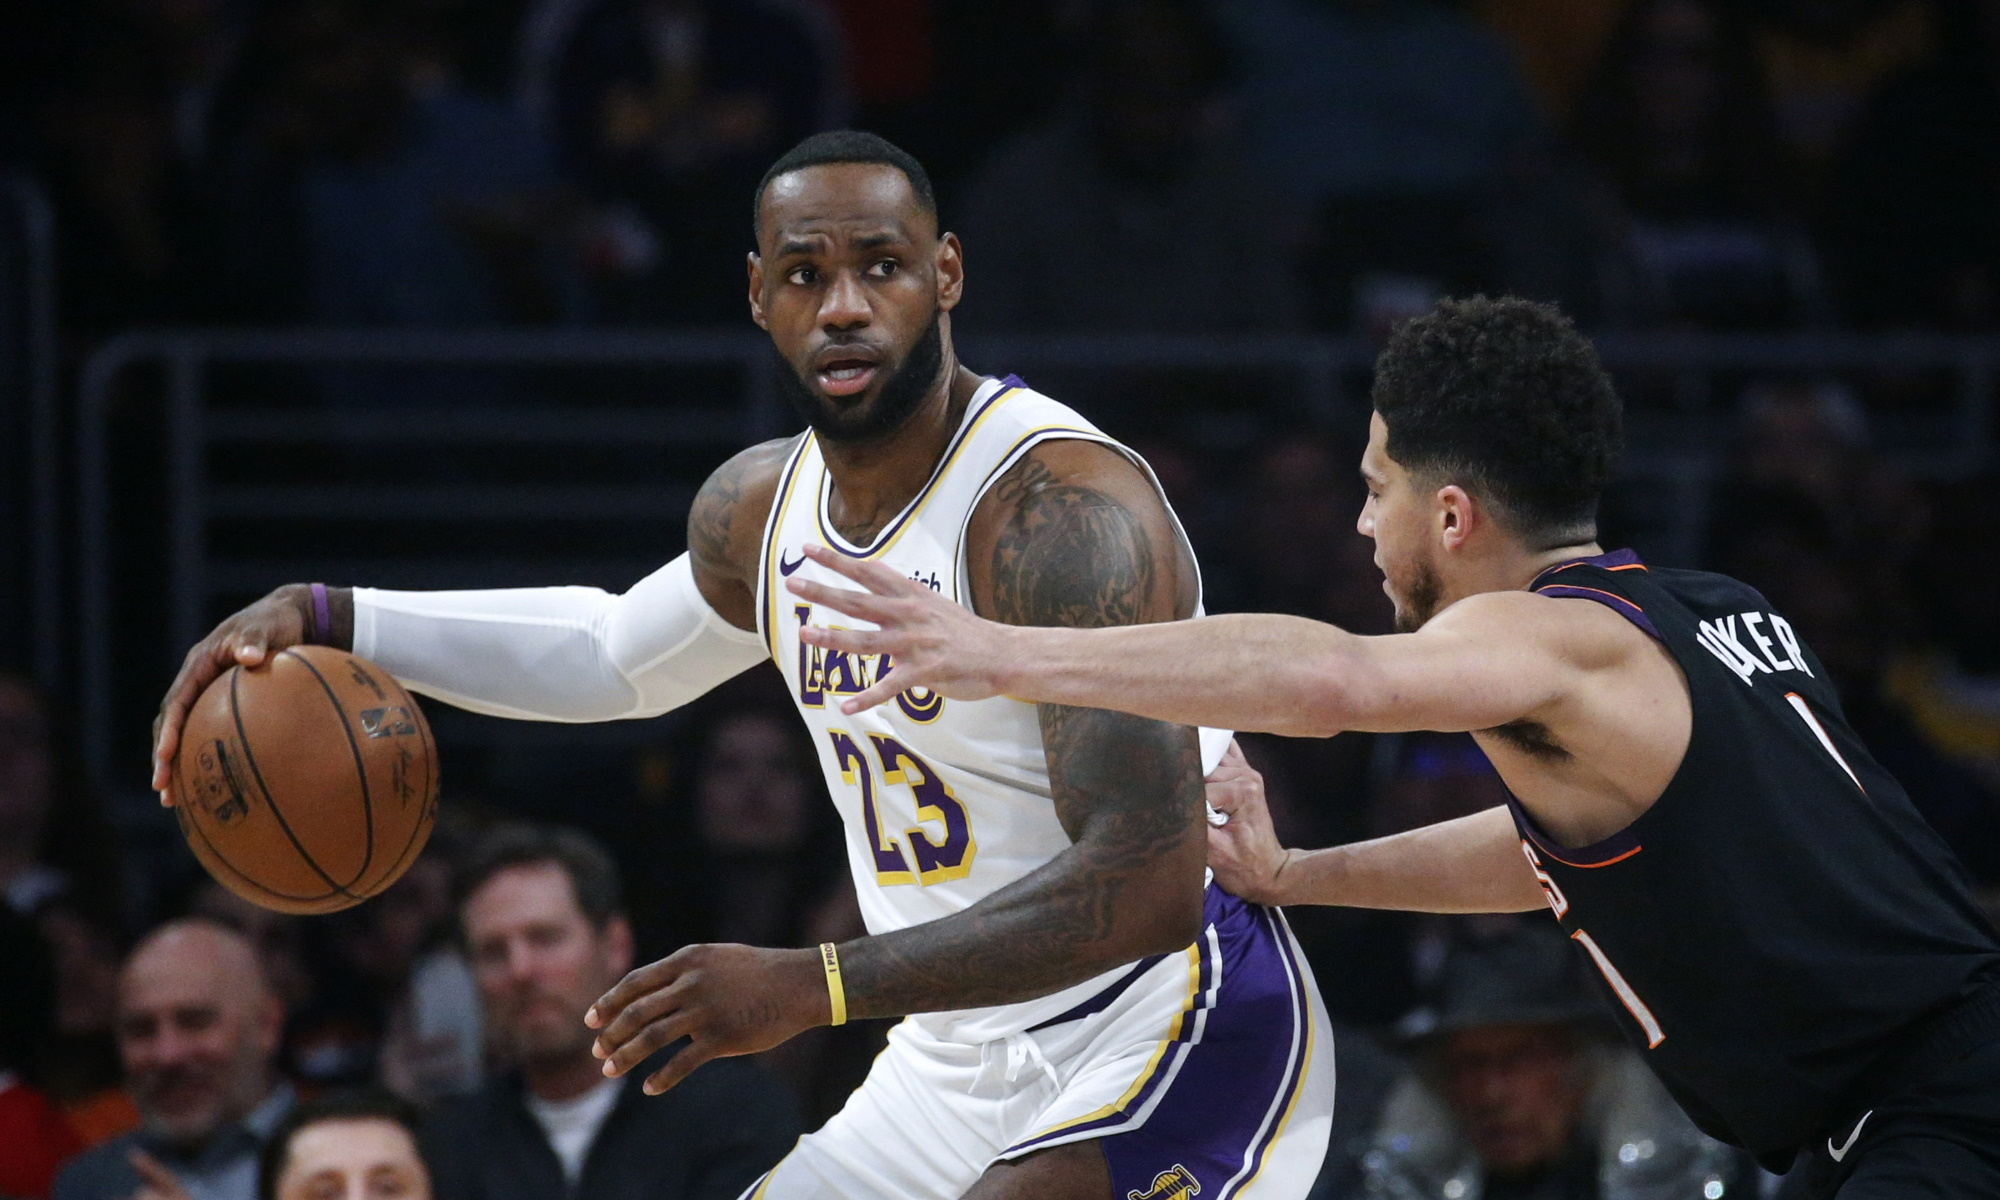 LeBron James and Devin Booker, Los Angeles Lakers vs Phoenix Suns at STAPLES Center